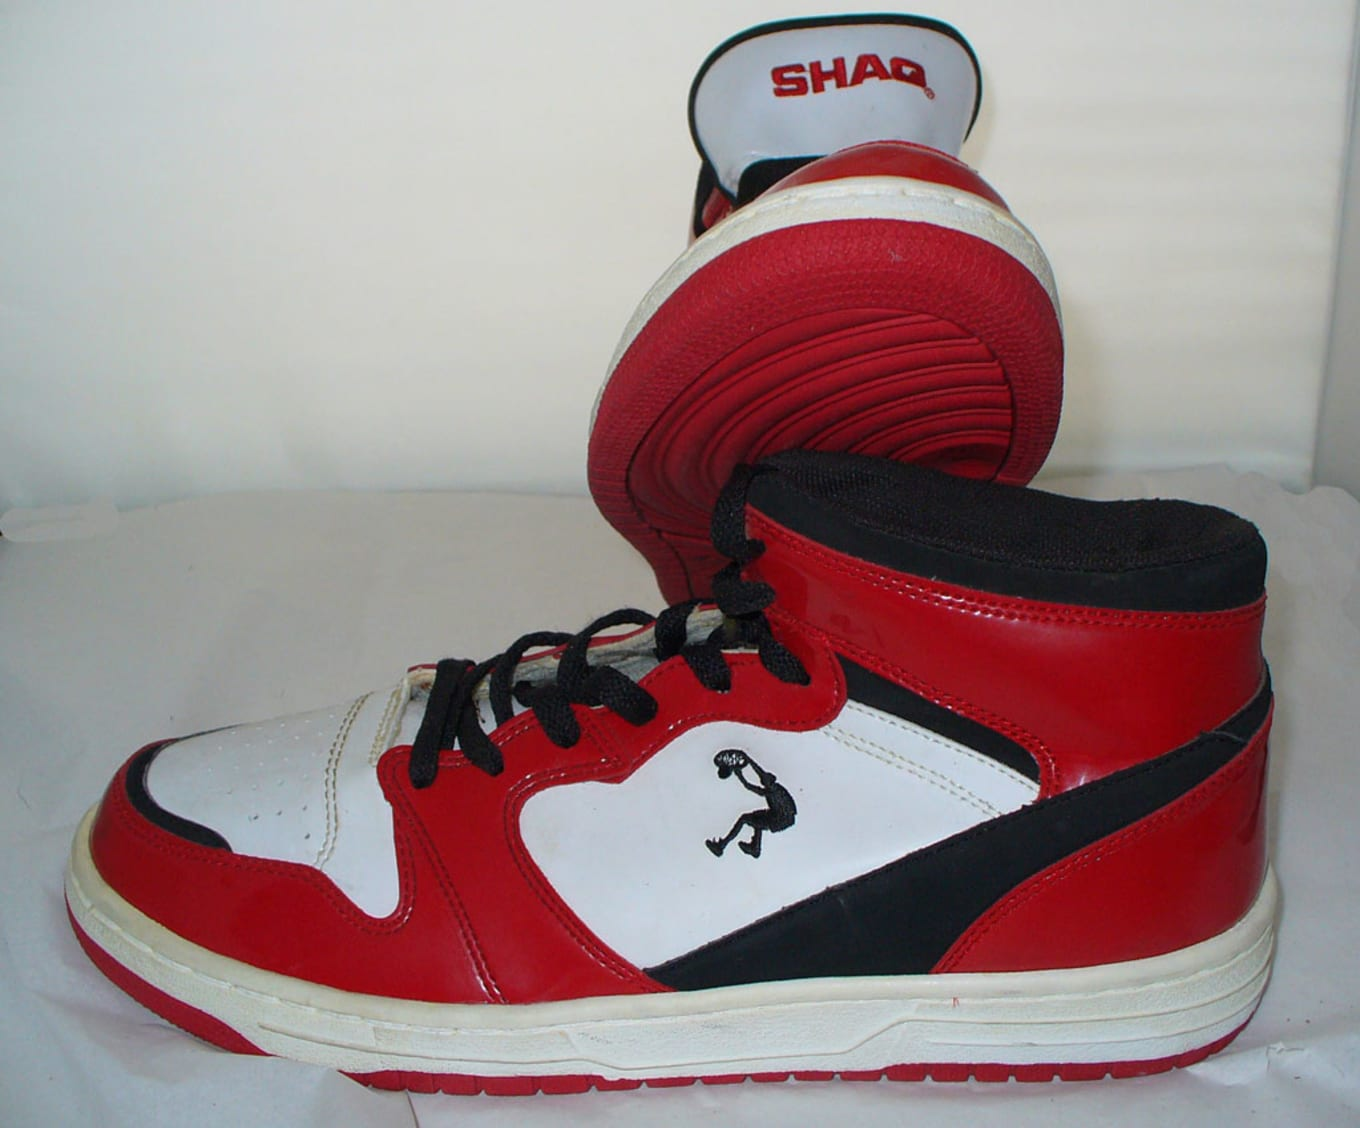 Sustancial Miniatura Labe  Most Flagrant Shaq Sneaker Knockoffs | Sole Collector